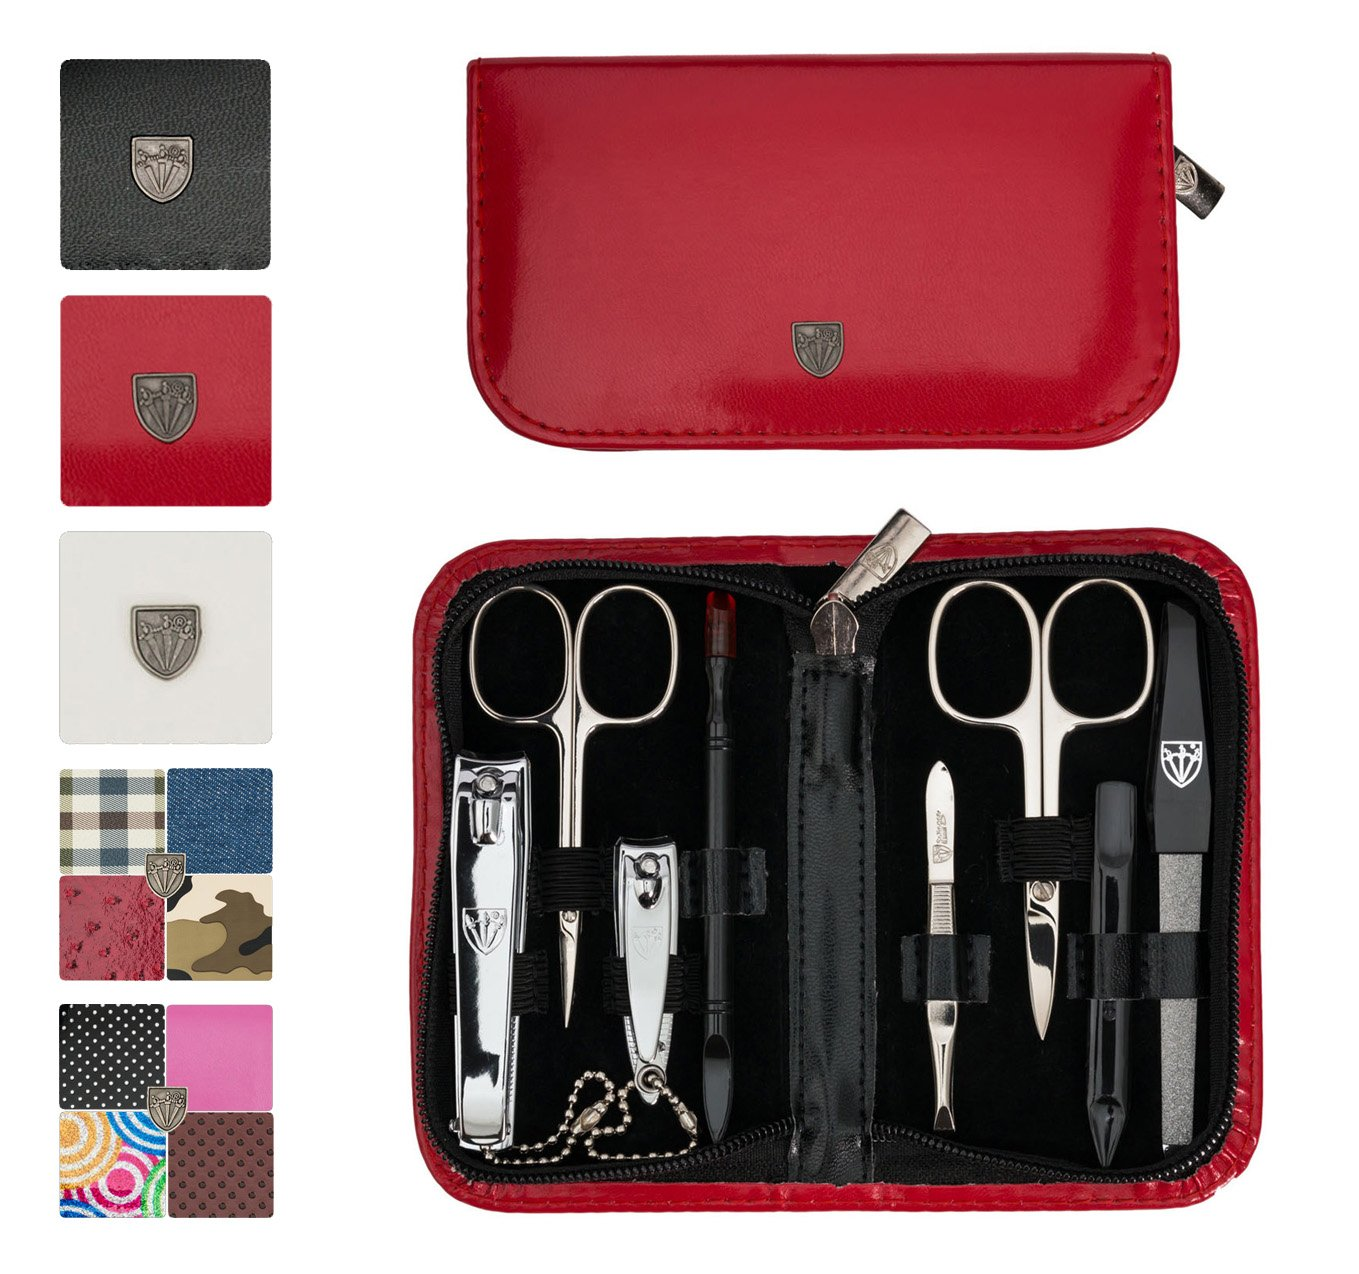 3 Swords Germany - brand quality 8 piece manicure pedicure grooming kit set for professional finger & toe nail care scissors clipper fashion leather case in gift box, Made in Solingen Germany (003065)